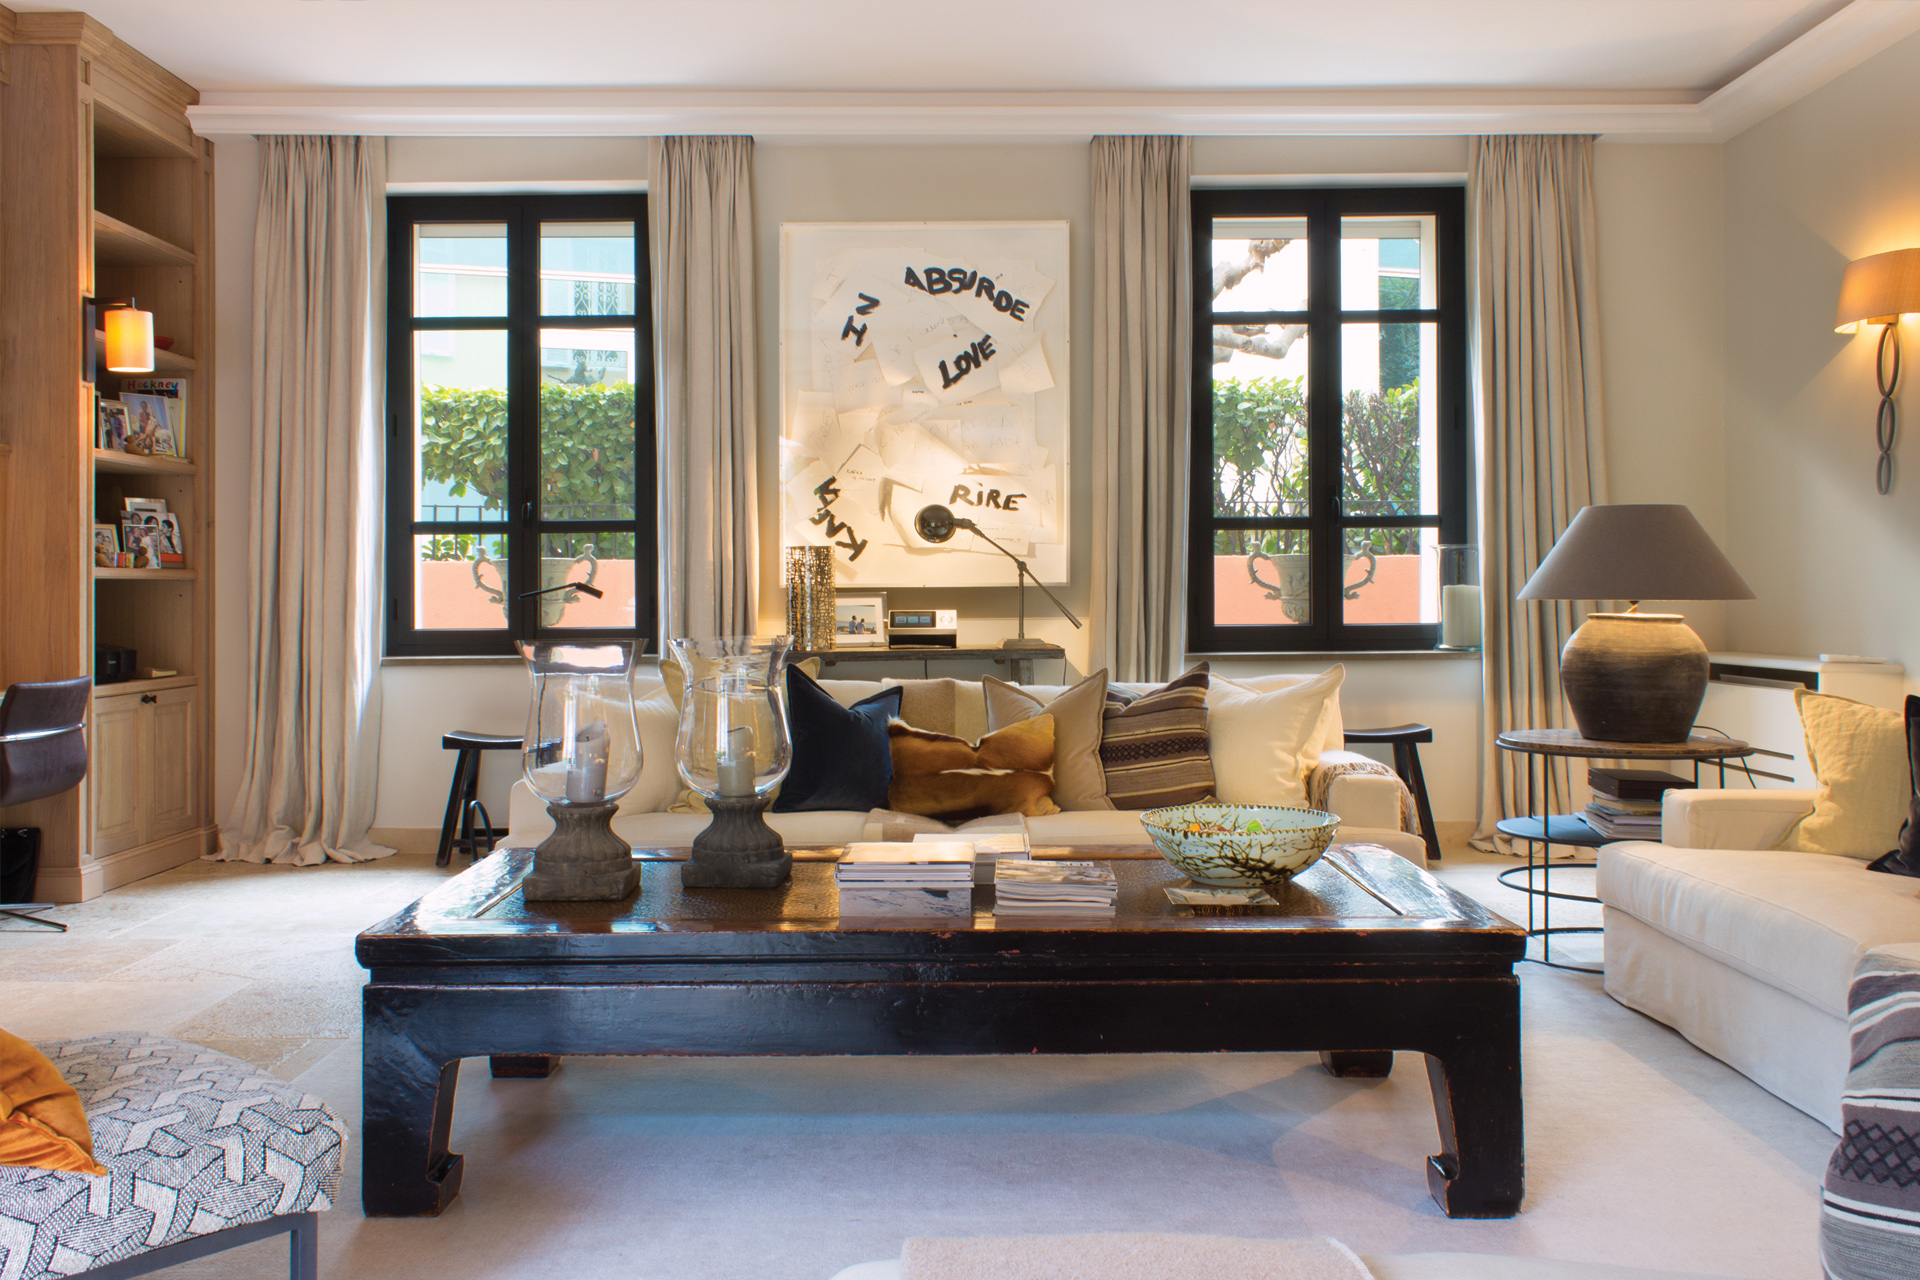 Home D K Interiors Interior Designers Cannes French Riviera